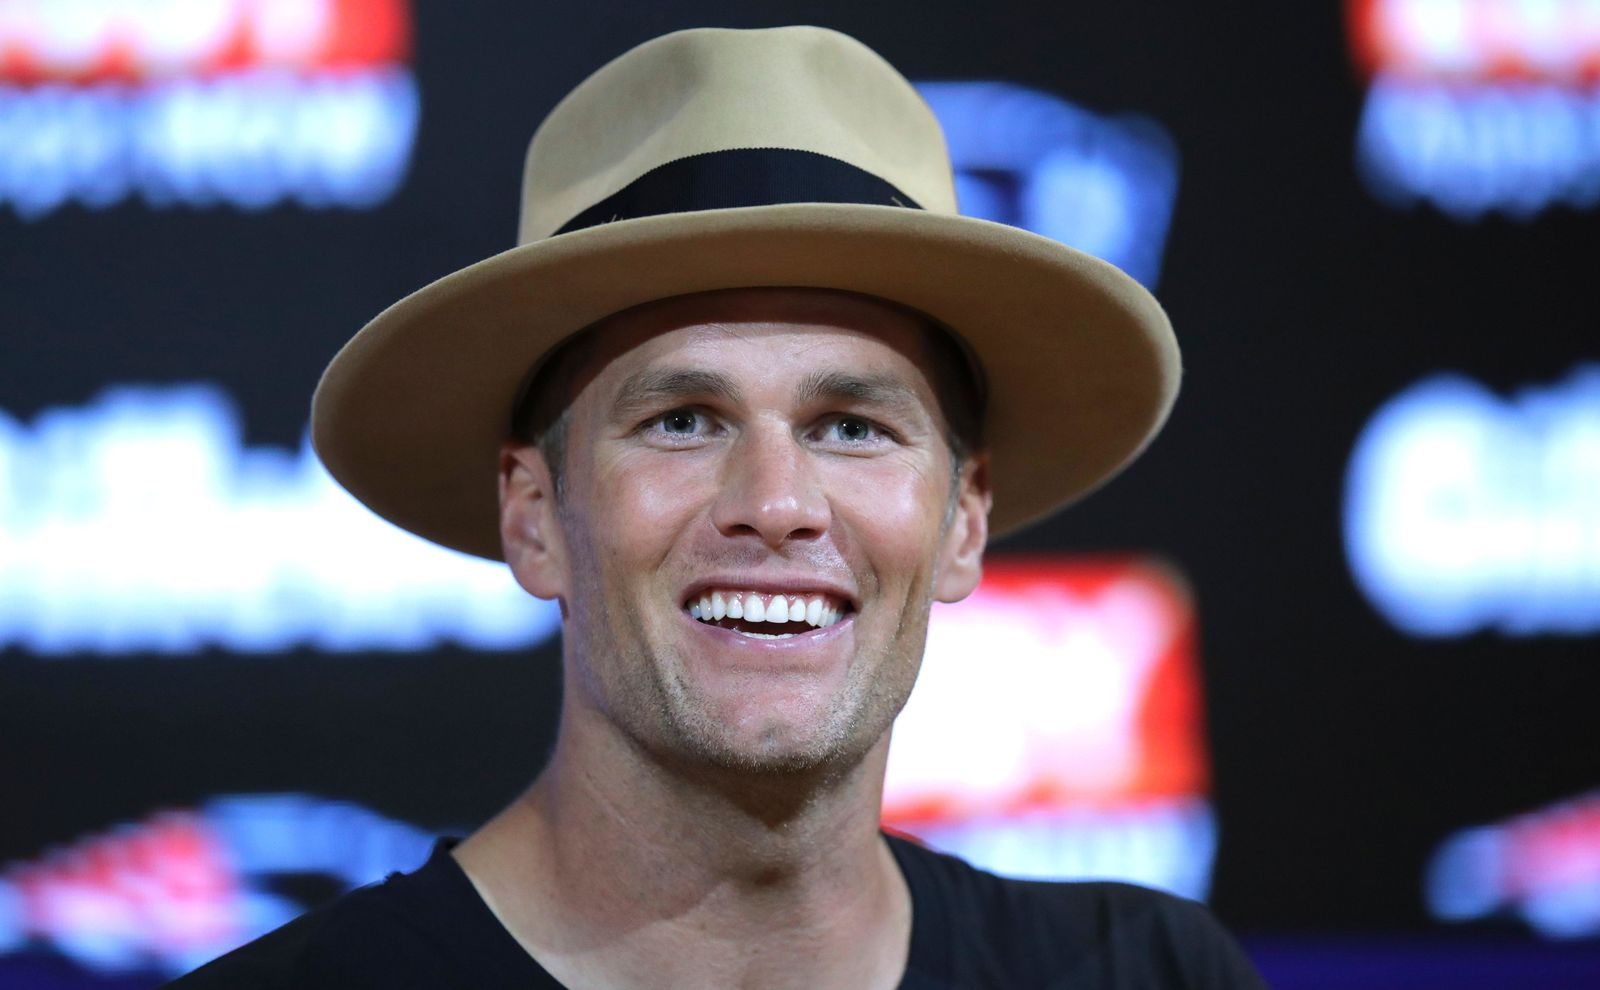 New England Patriots quarterback Tom Brady speaks to the media following an NFL preseason football game against the Carolina Panthers, Thursday, Aug. 22, 2019, in Foxborough, Mass. (AP Photo/Charles Krupa)